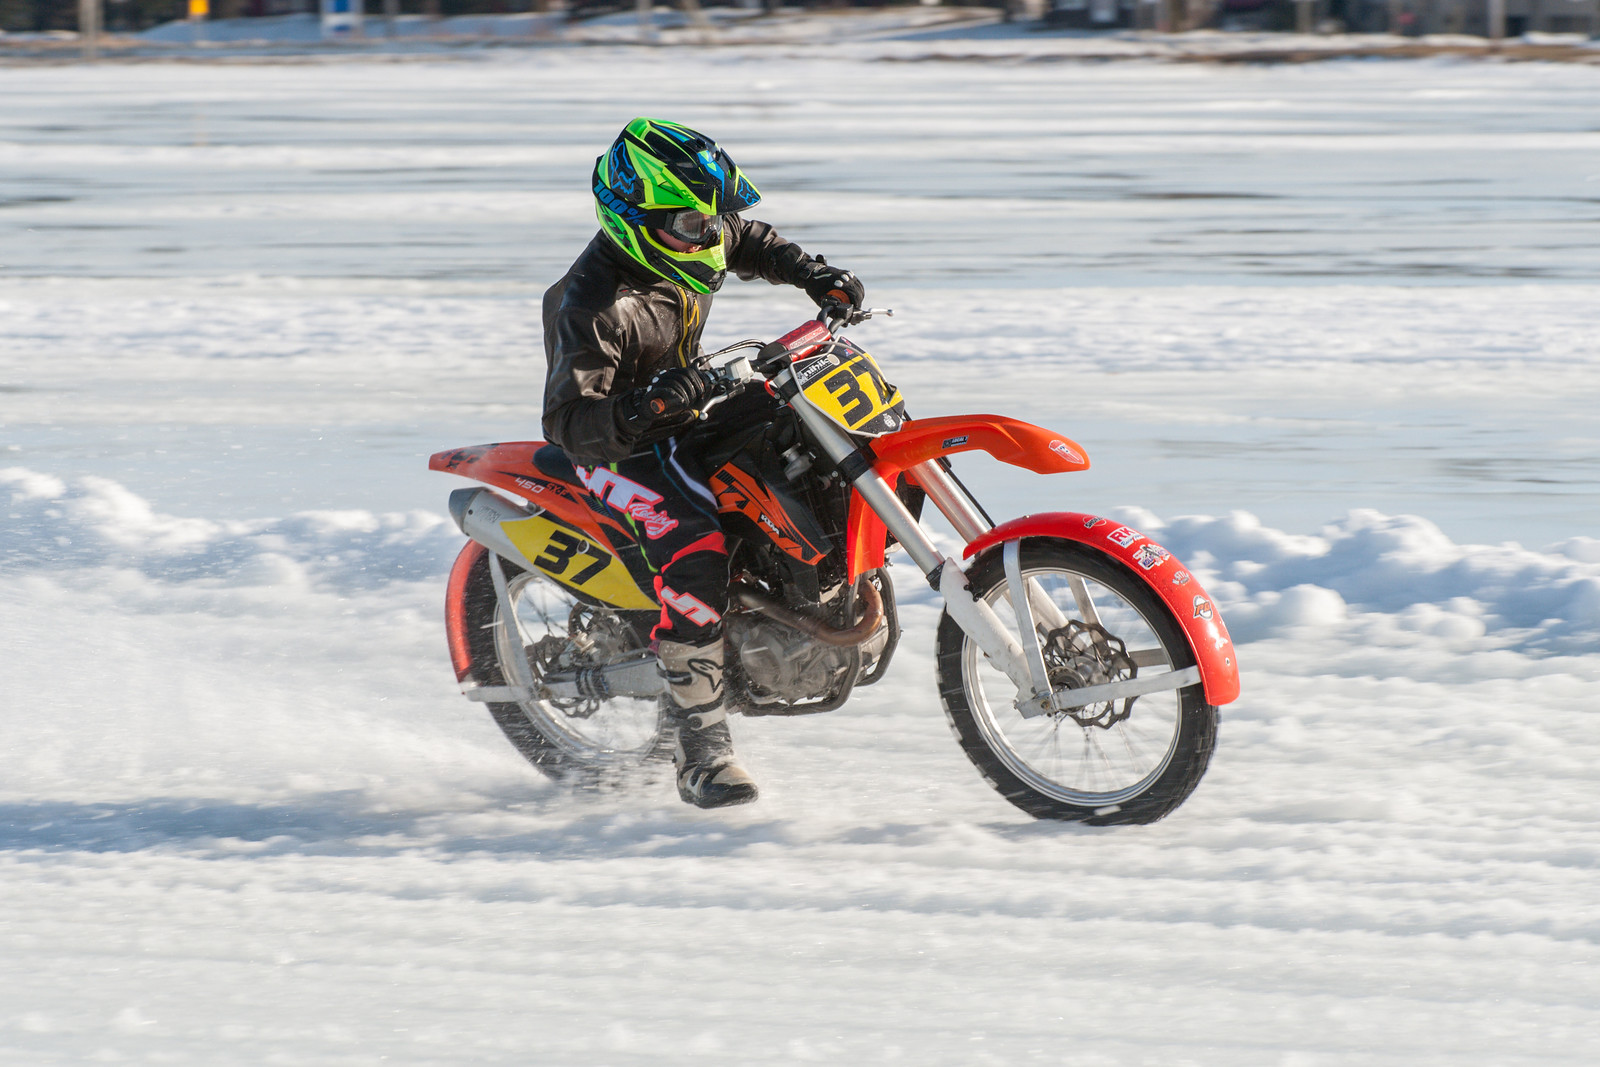 Ice Racing An Inside Look At Racing Your Dirt Bike On The Ice